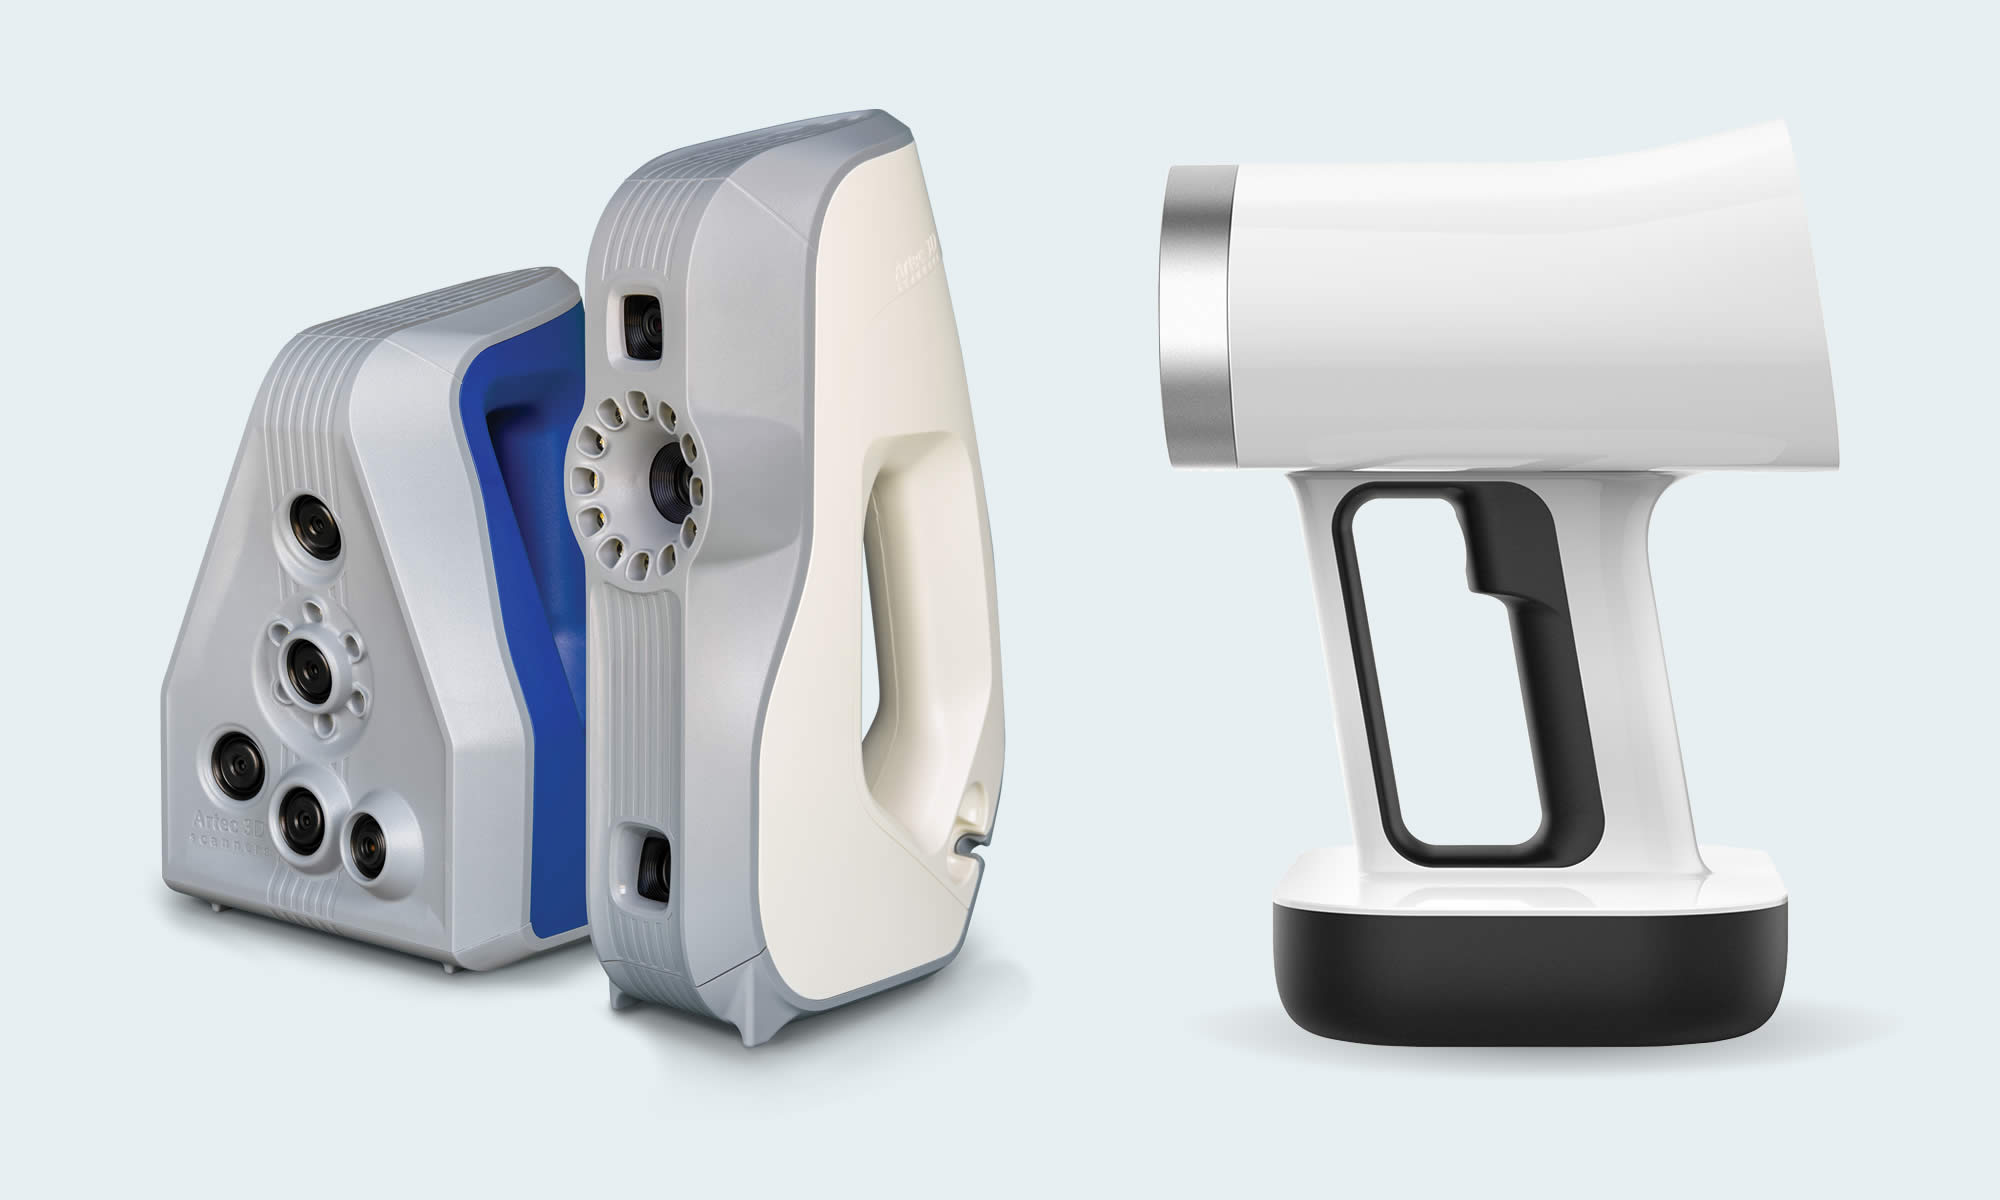 Reverse Engineering using an Artec 3D Scanner with SOLIDWORKS